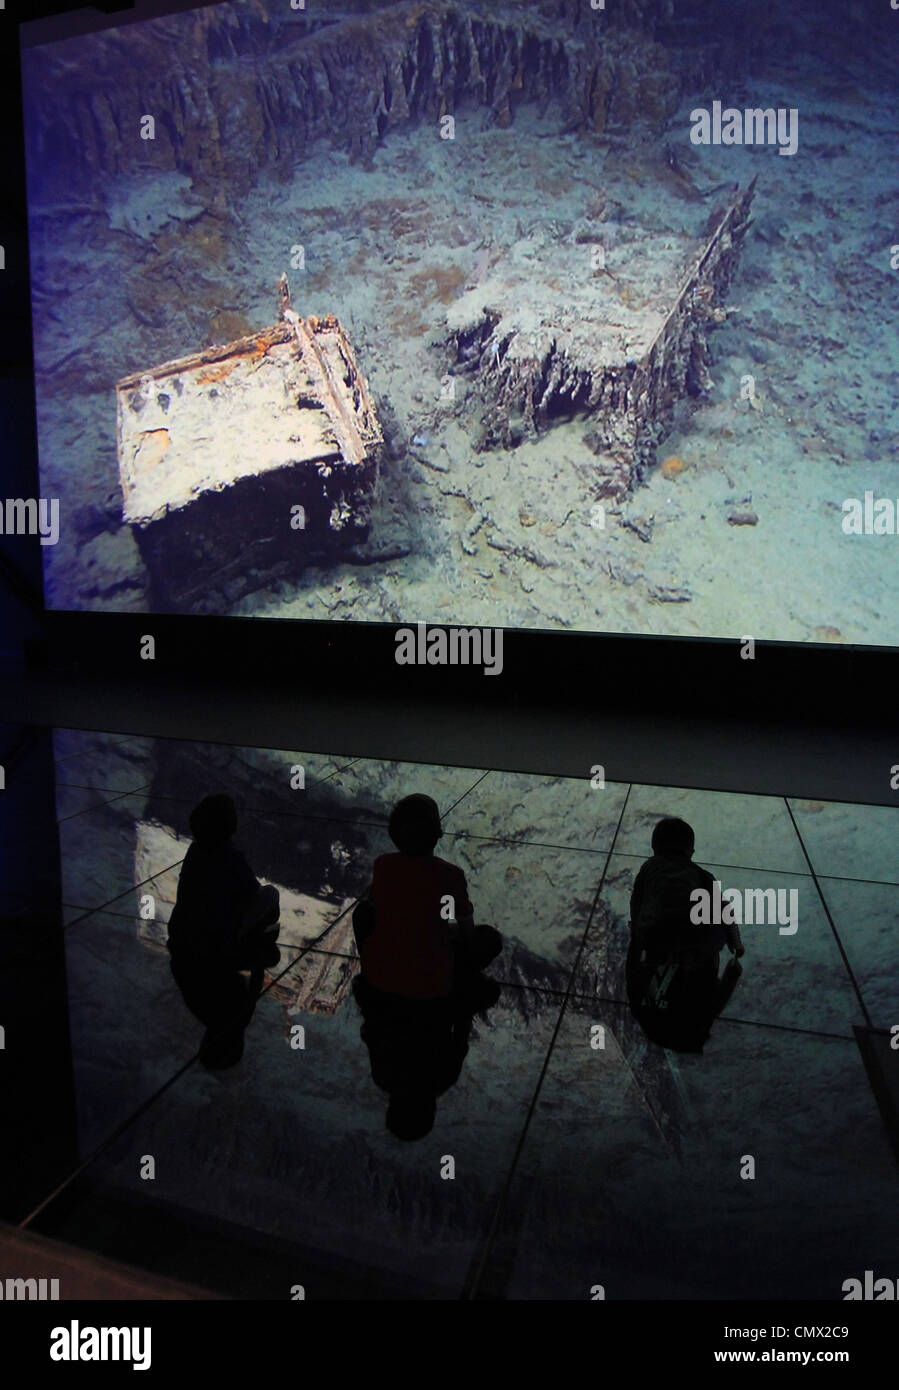 Children look at a projection showing an image of wreckage from the Titanic wreck on the seabed - Stock Image